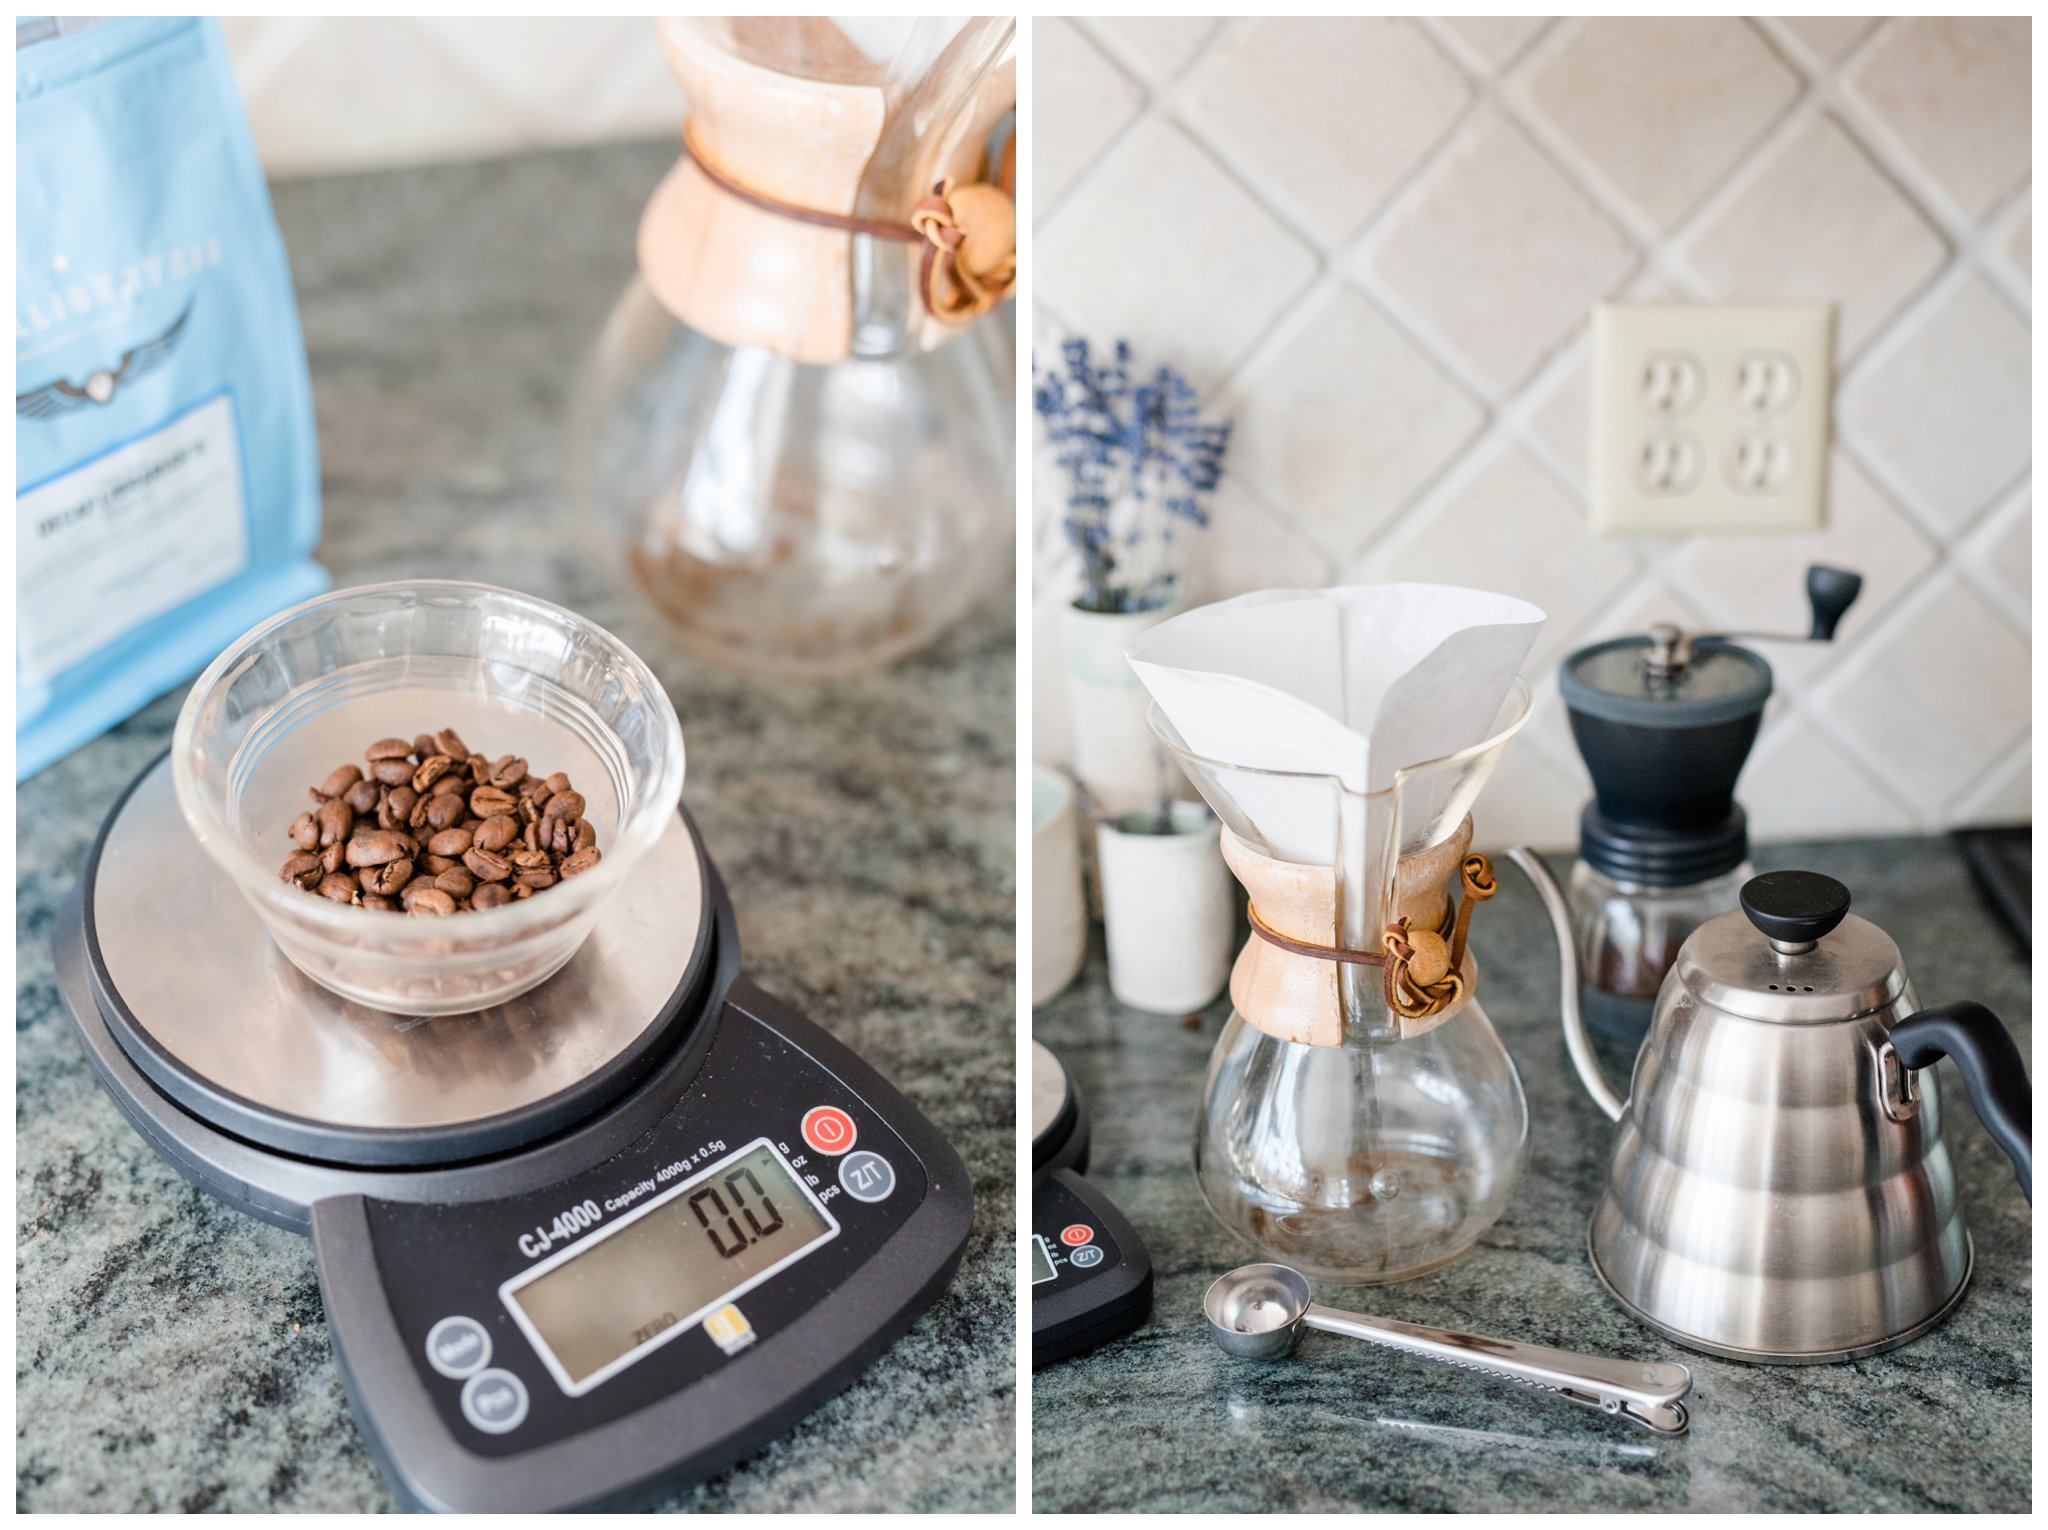 So here we will now grind the beans and then the coffee will be placed in the filter on top of the carafe.